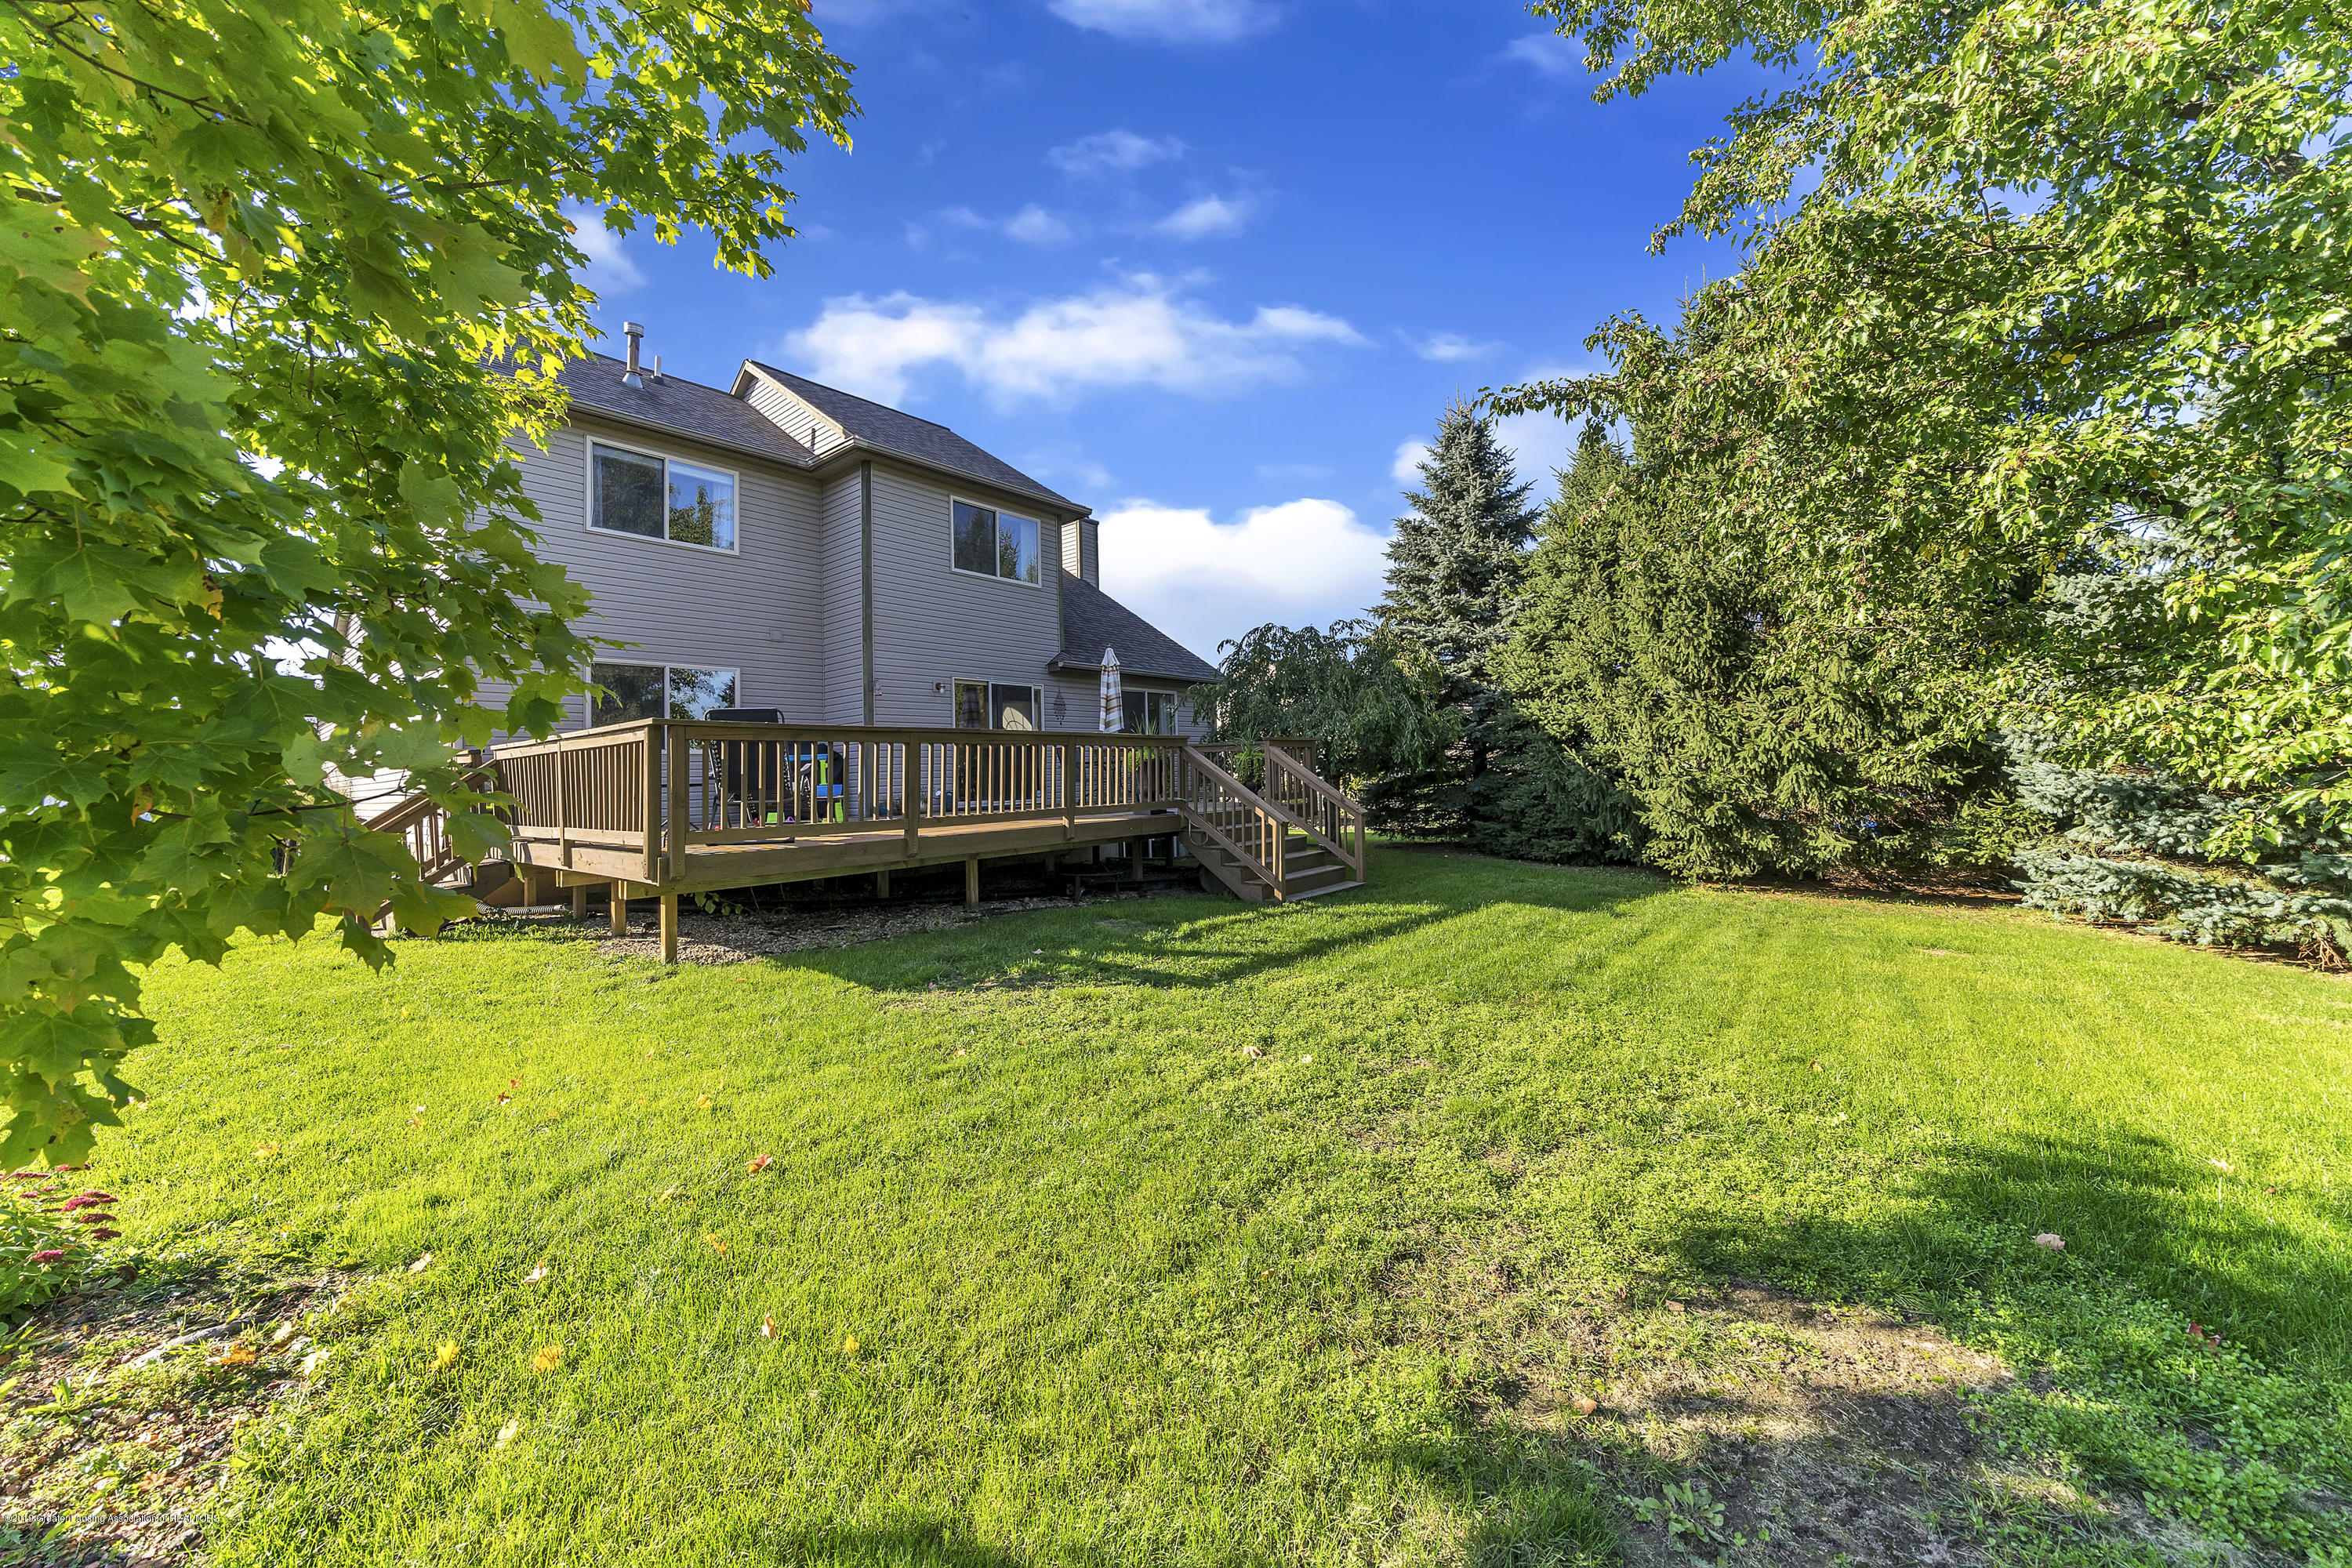 1258 Sumac Ln - 1258-Sumac-WindowStill-Real-Estate-Photo - 31